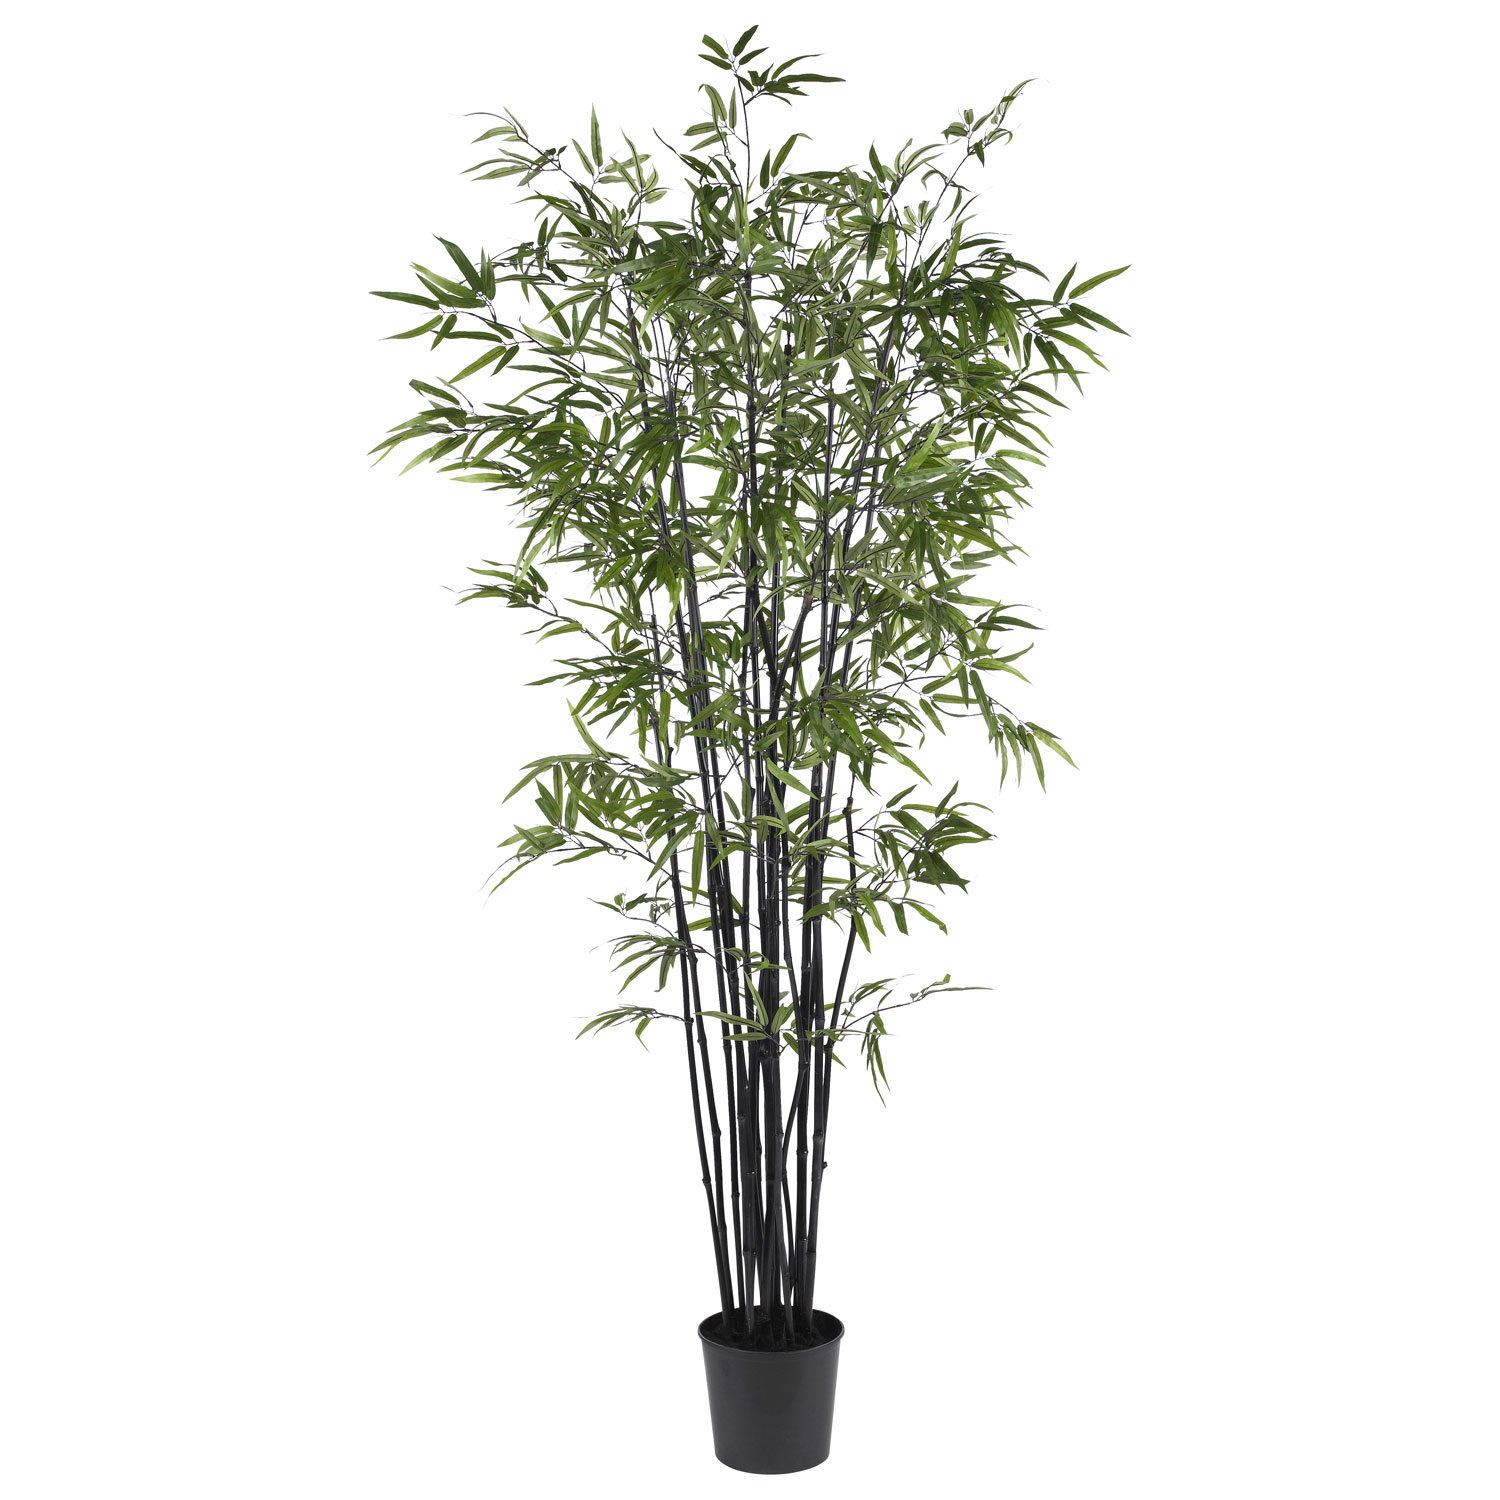 6 5 Foot Black Bamboo Tree Potted 5277